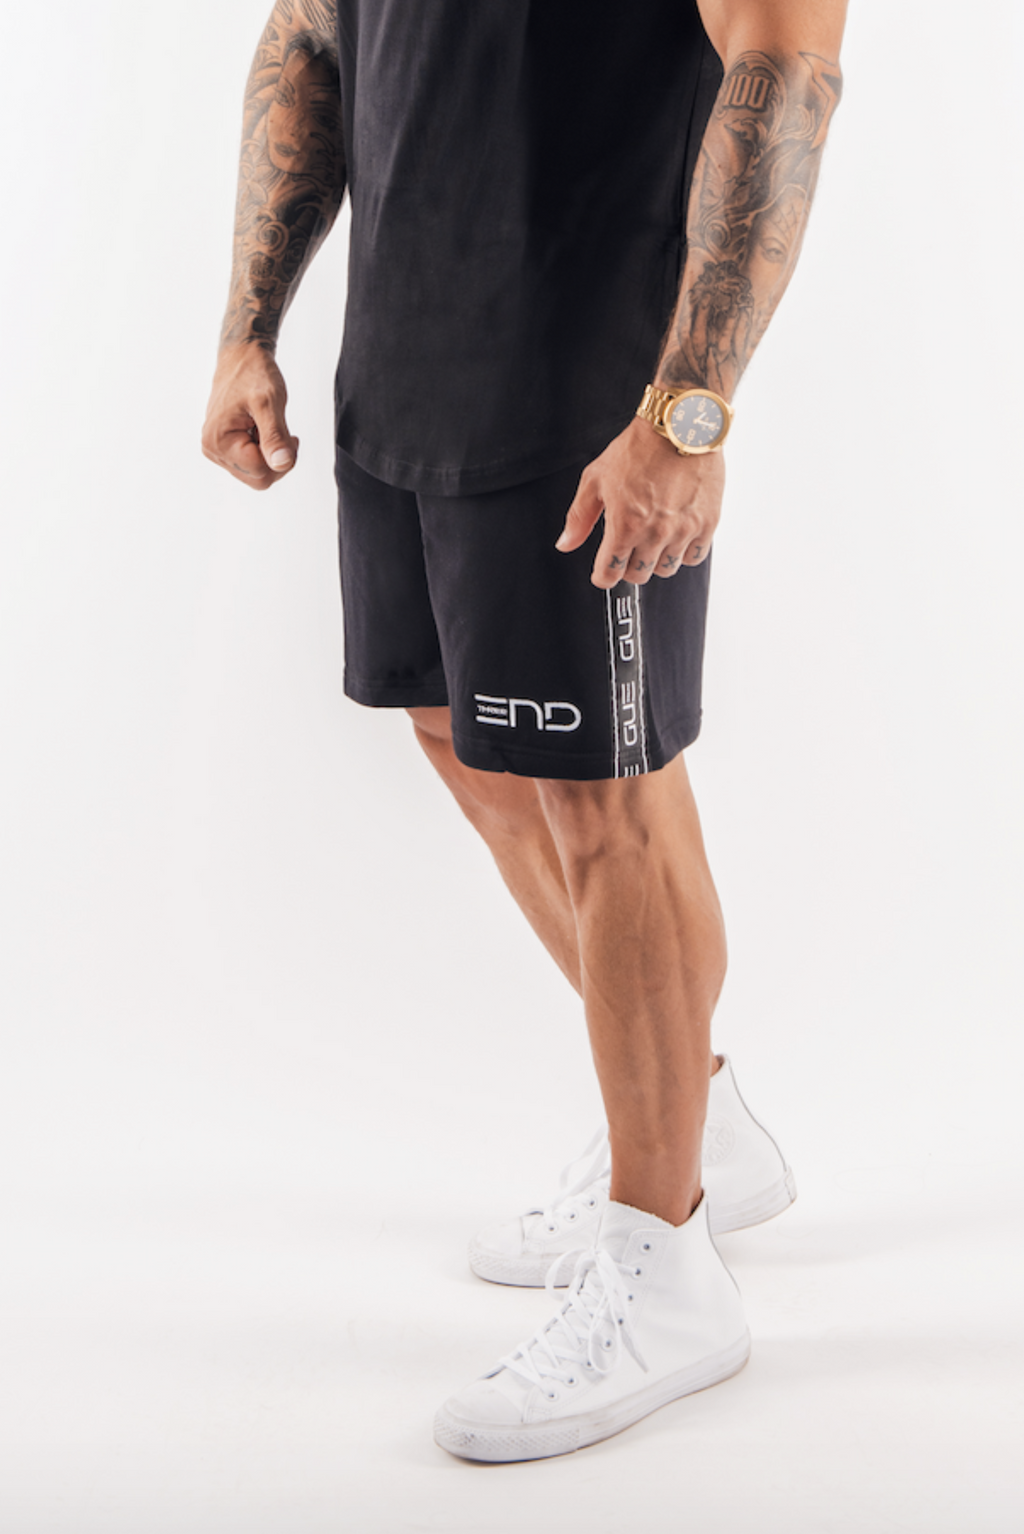 URBAN TAPE SHORTS - BLACK